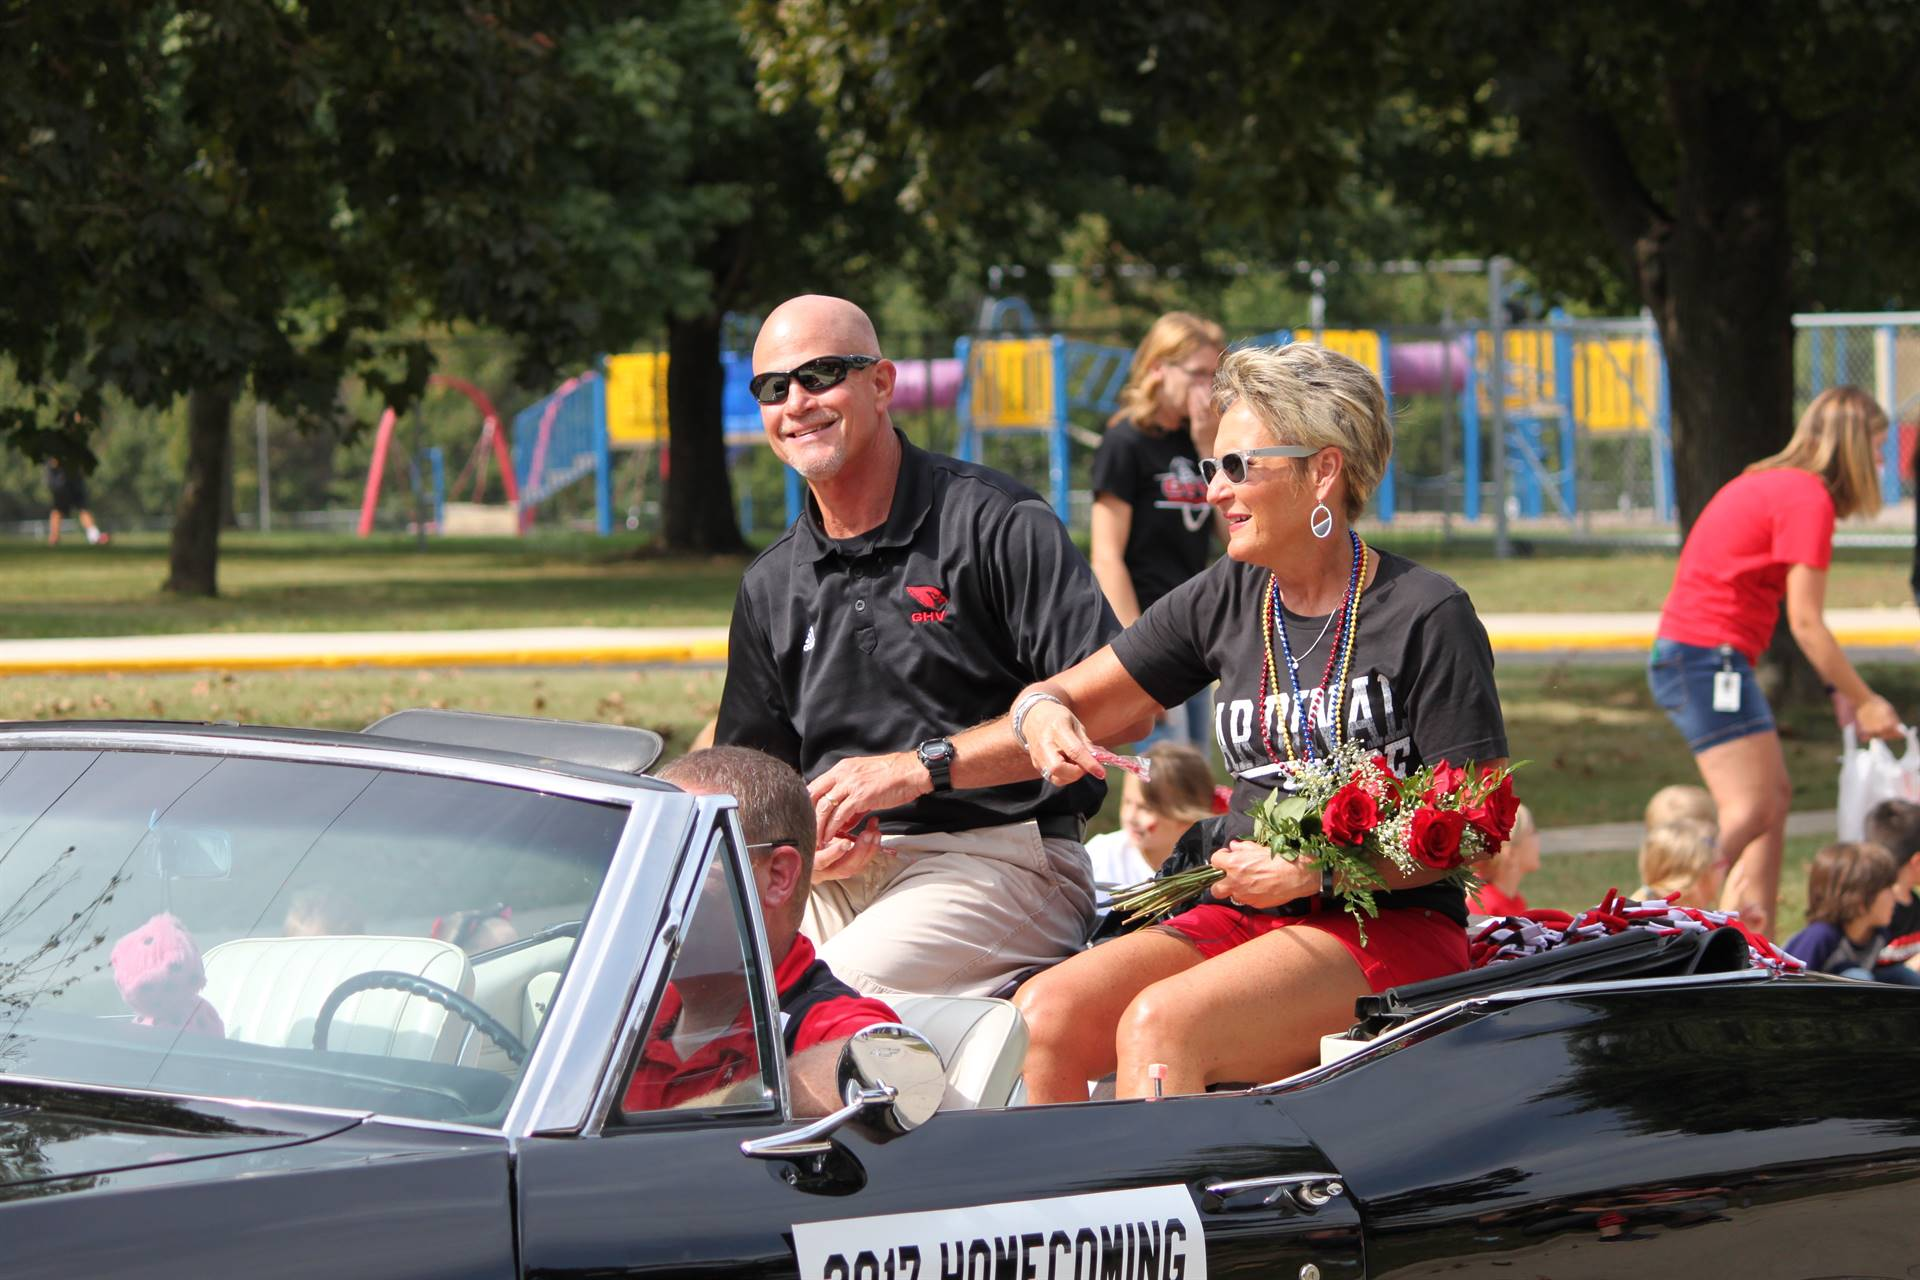 2017 Homecoming Parade marshals riding in convertible